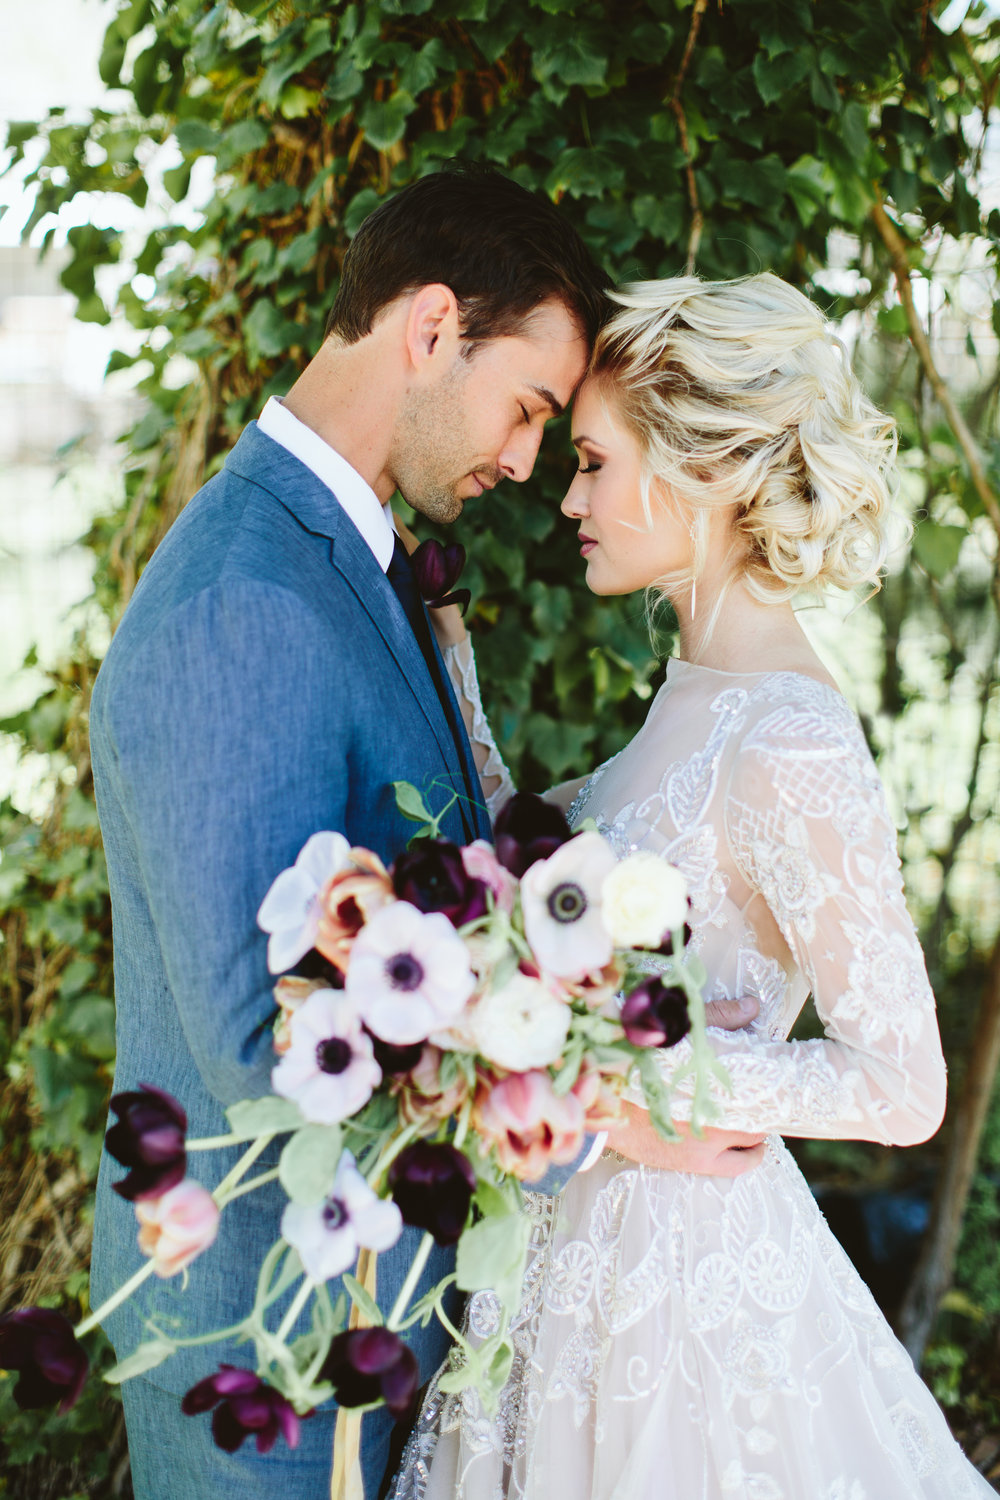 Ocean Wedding with Purple, Mauve, and Grays | Bespoken Weddings | Greenville SC